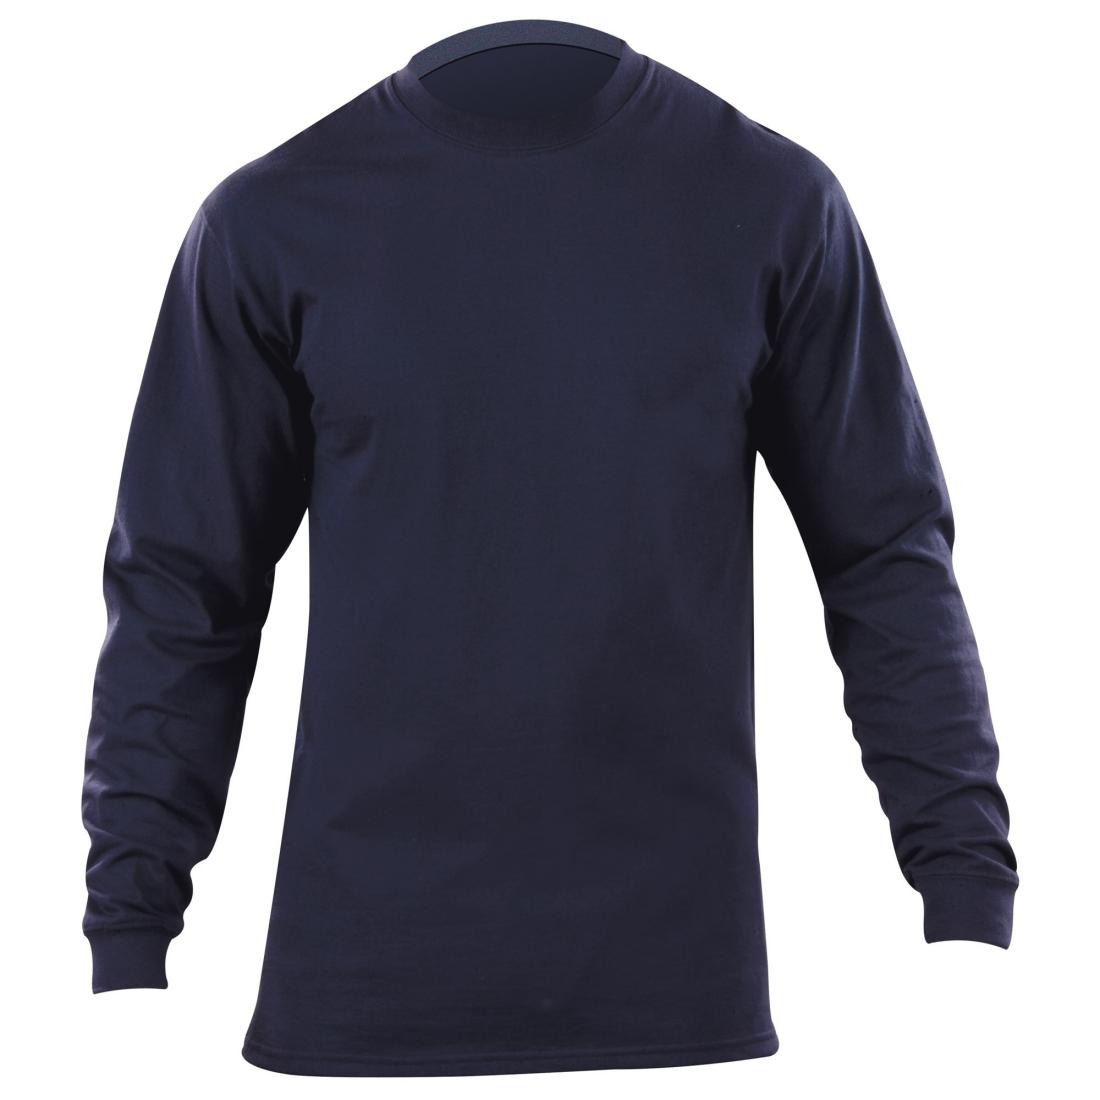 5.11 Tactical 40052 Men Station Wear Long Sleeve T-Shirt Fire Navy